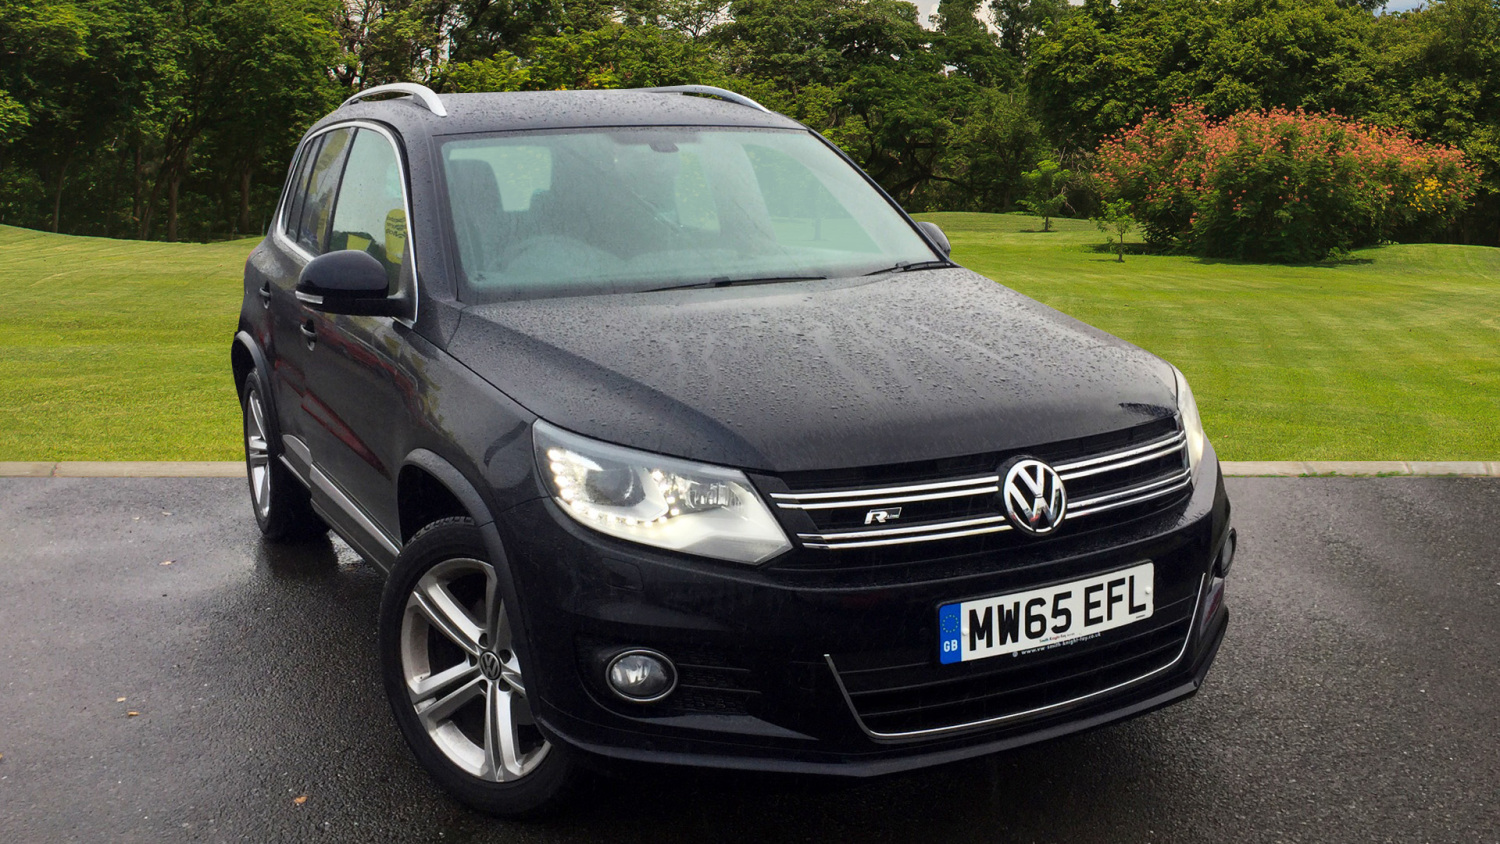 used volkswagen tiguan 2 0 tdi bluemotion tech r line 150 5dr nav diesel estate for sale in. Black Bedroom Furniture Sets. Home Design Ideas